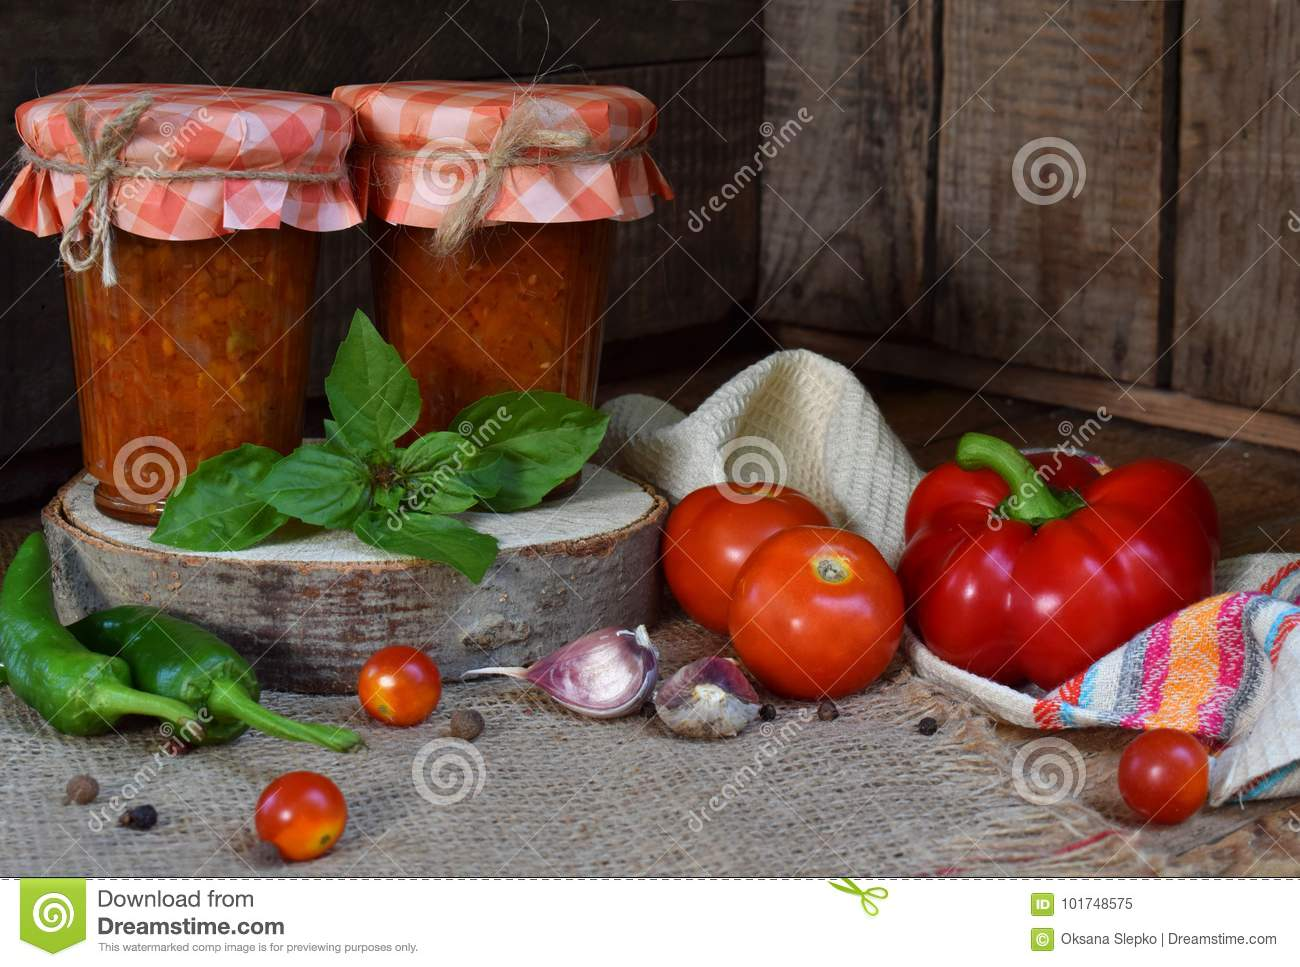 Jars of tomato sauce with chili, pepper and garlic. Bolognese sauce, lecho or adjika. Preservation. Canning.